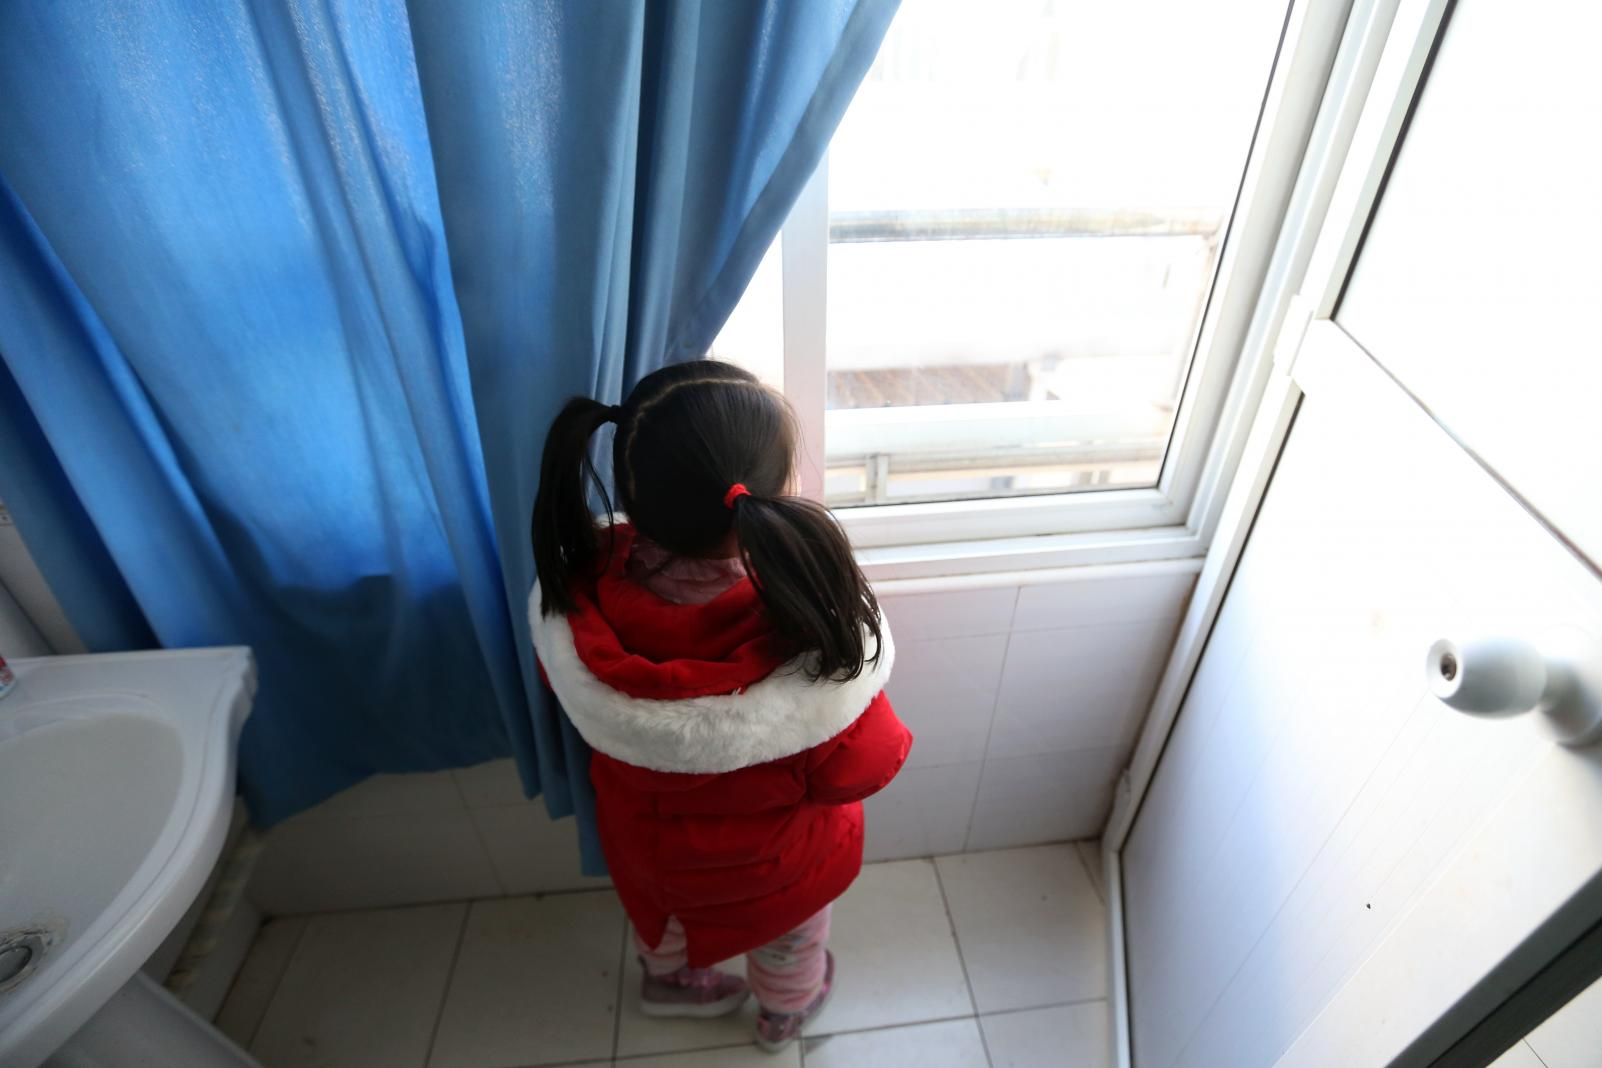 A child looking out the window, unable to go outside to play.